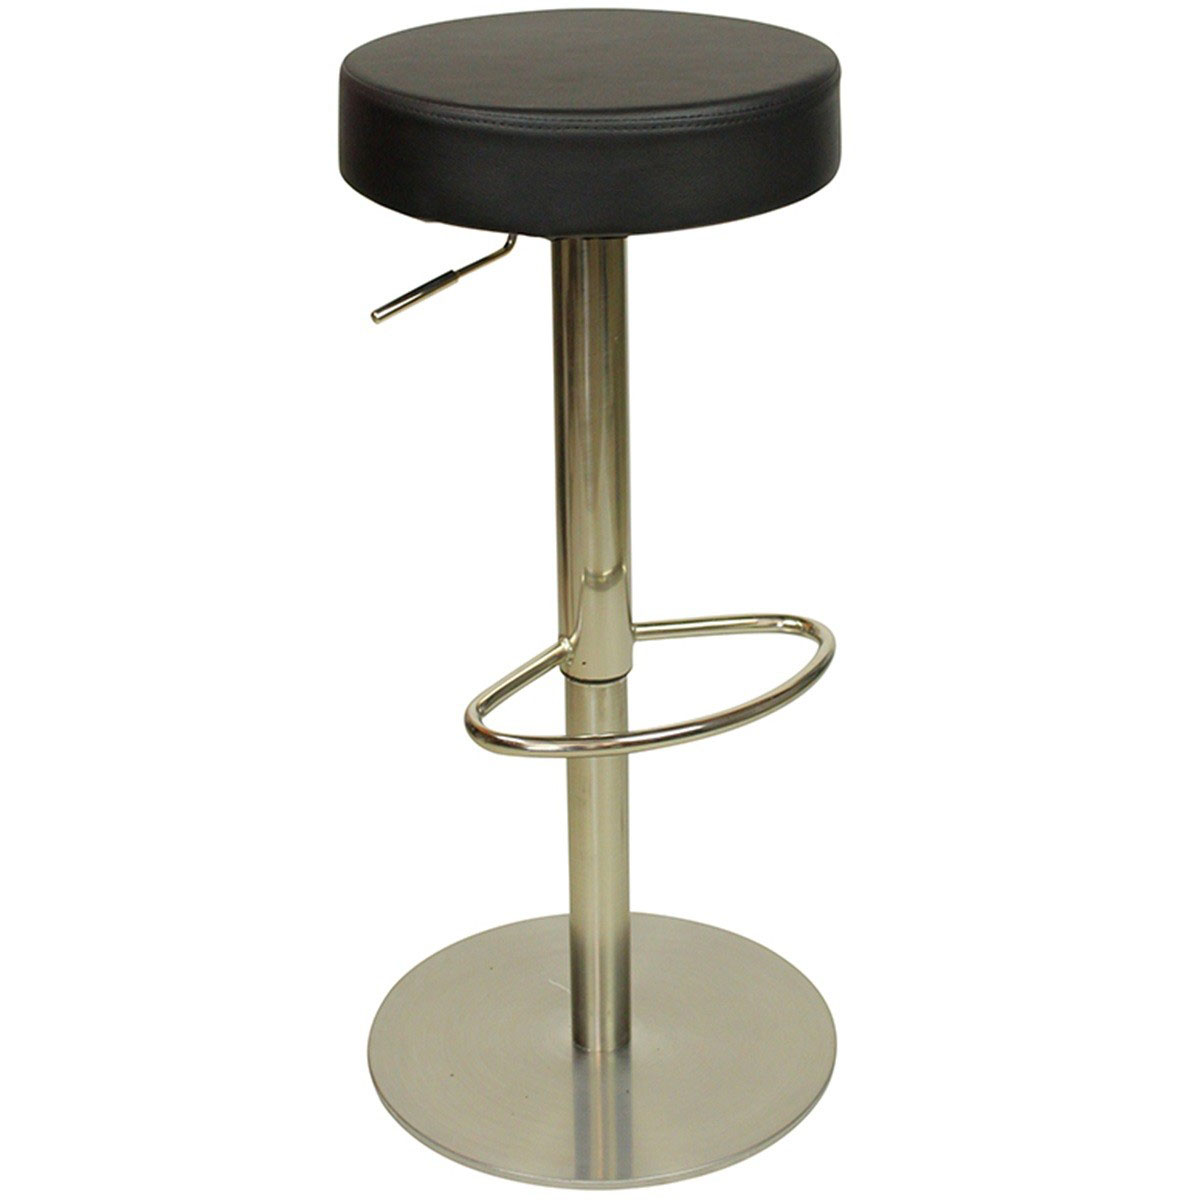 Black Kitchen Bar Stools Uk: Black Bar Stools UK Sale. Cheap Black Kitchen Stools